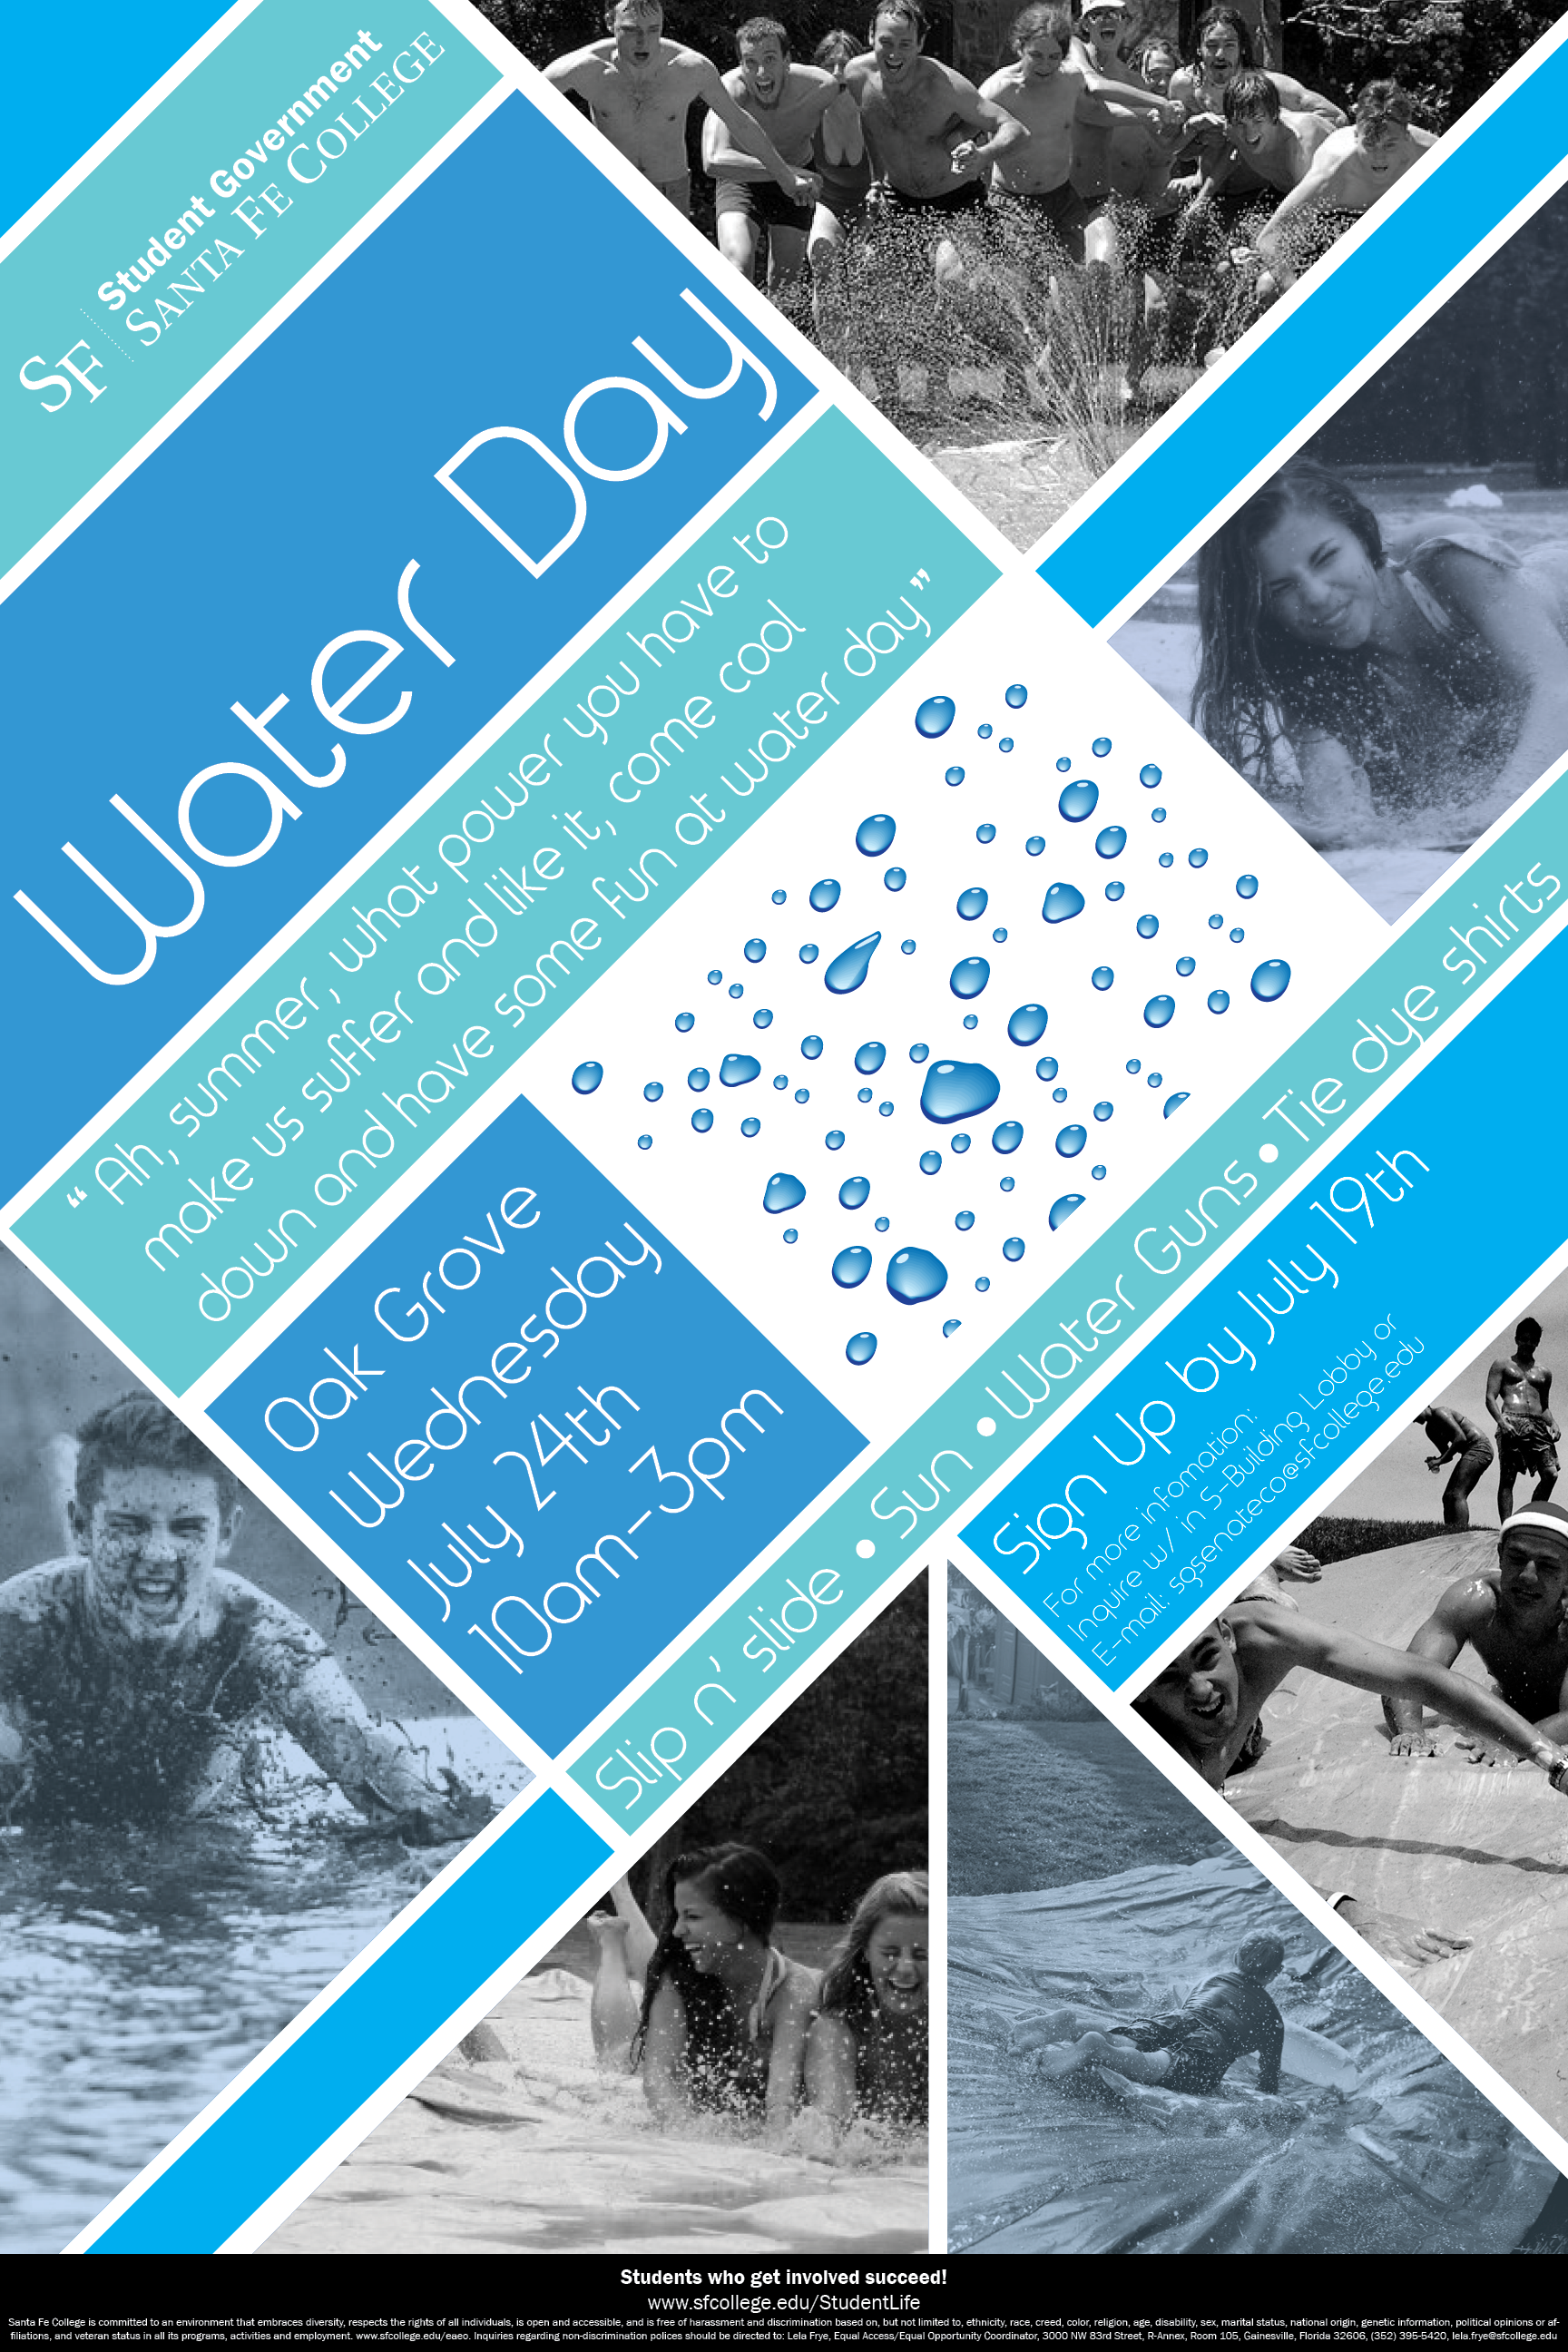 Poster design in indesign - Water Day Event Poster For Sf College Summer 2013 Adobe Indesign Cs6